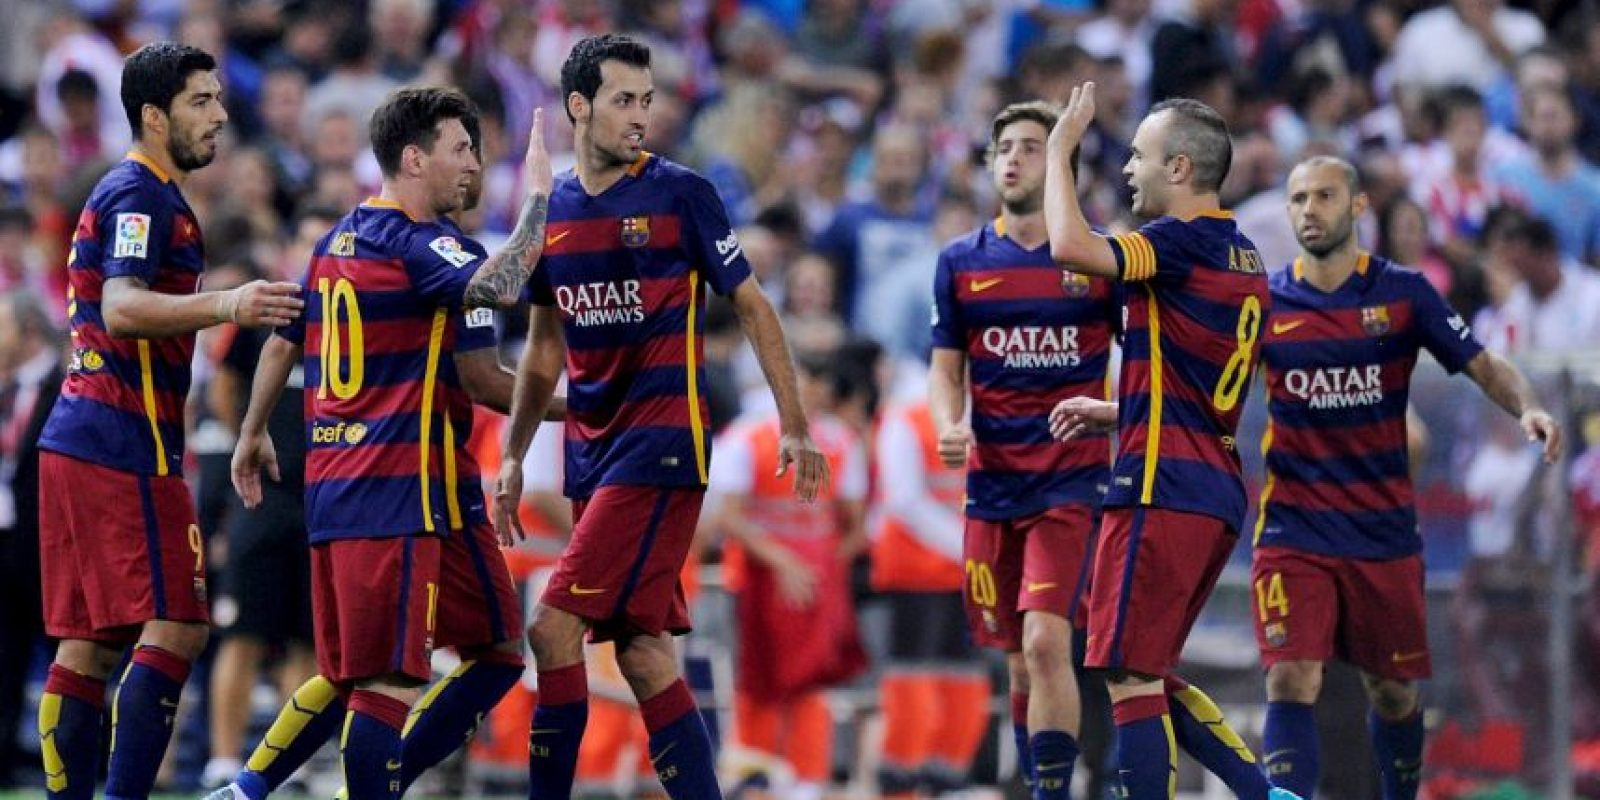 1. Barcelona Foto: Getty Images